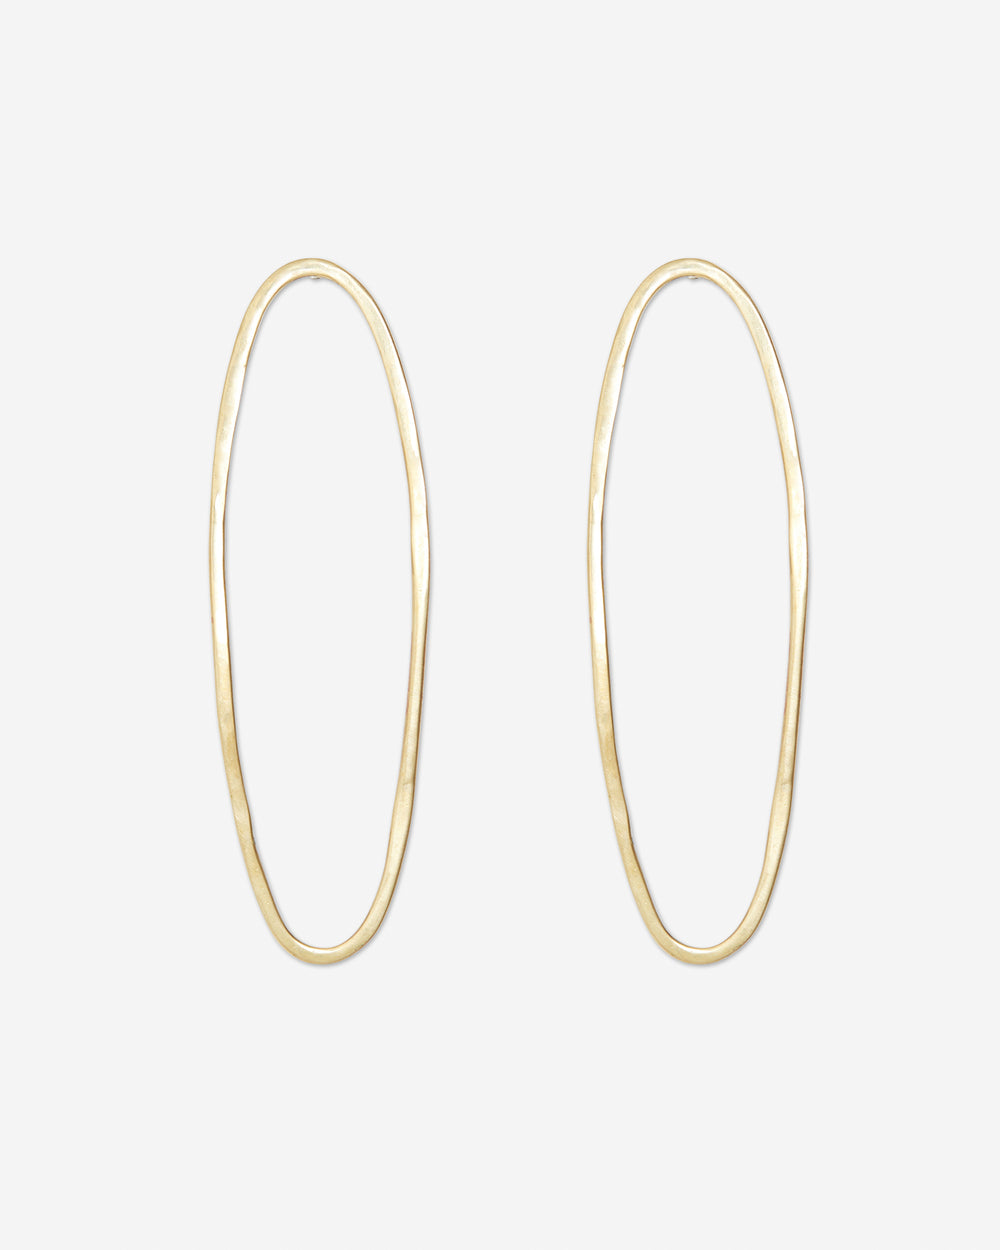 Long Loop 1 Earrings